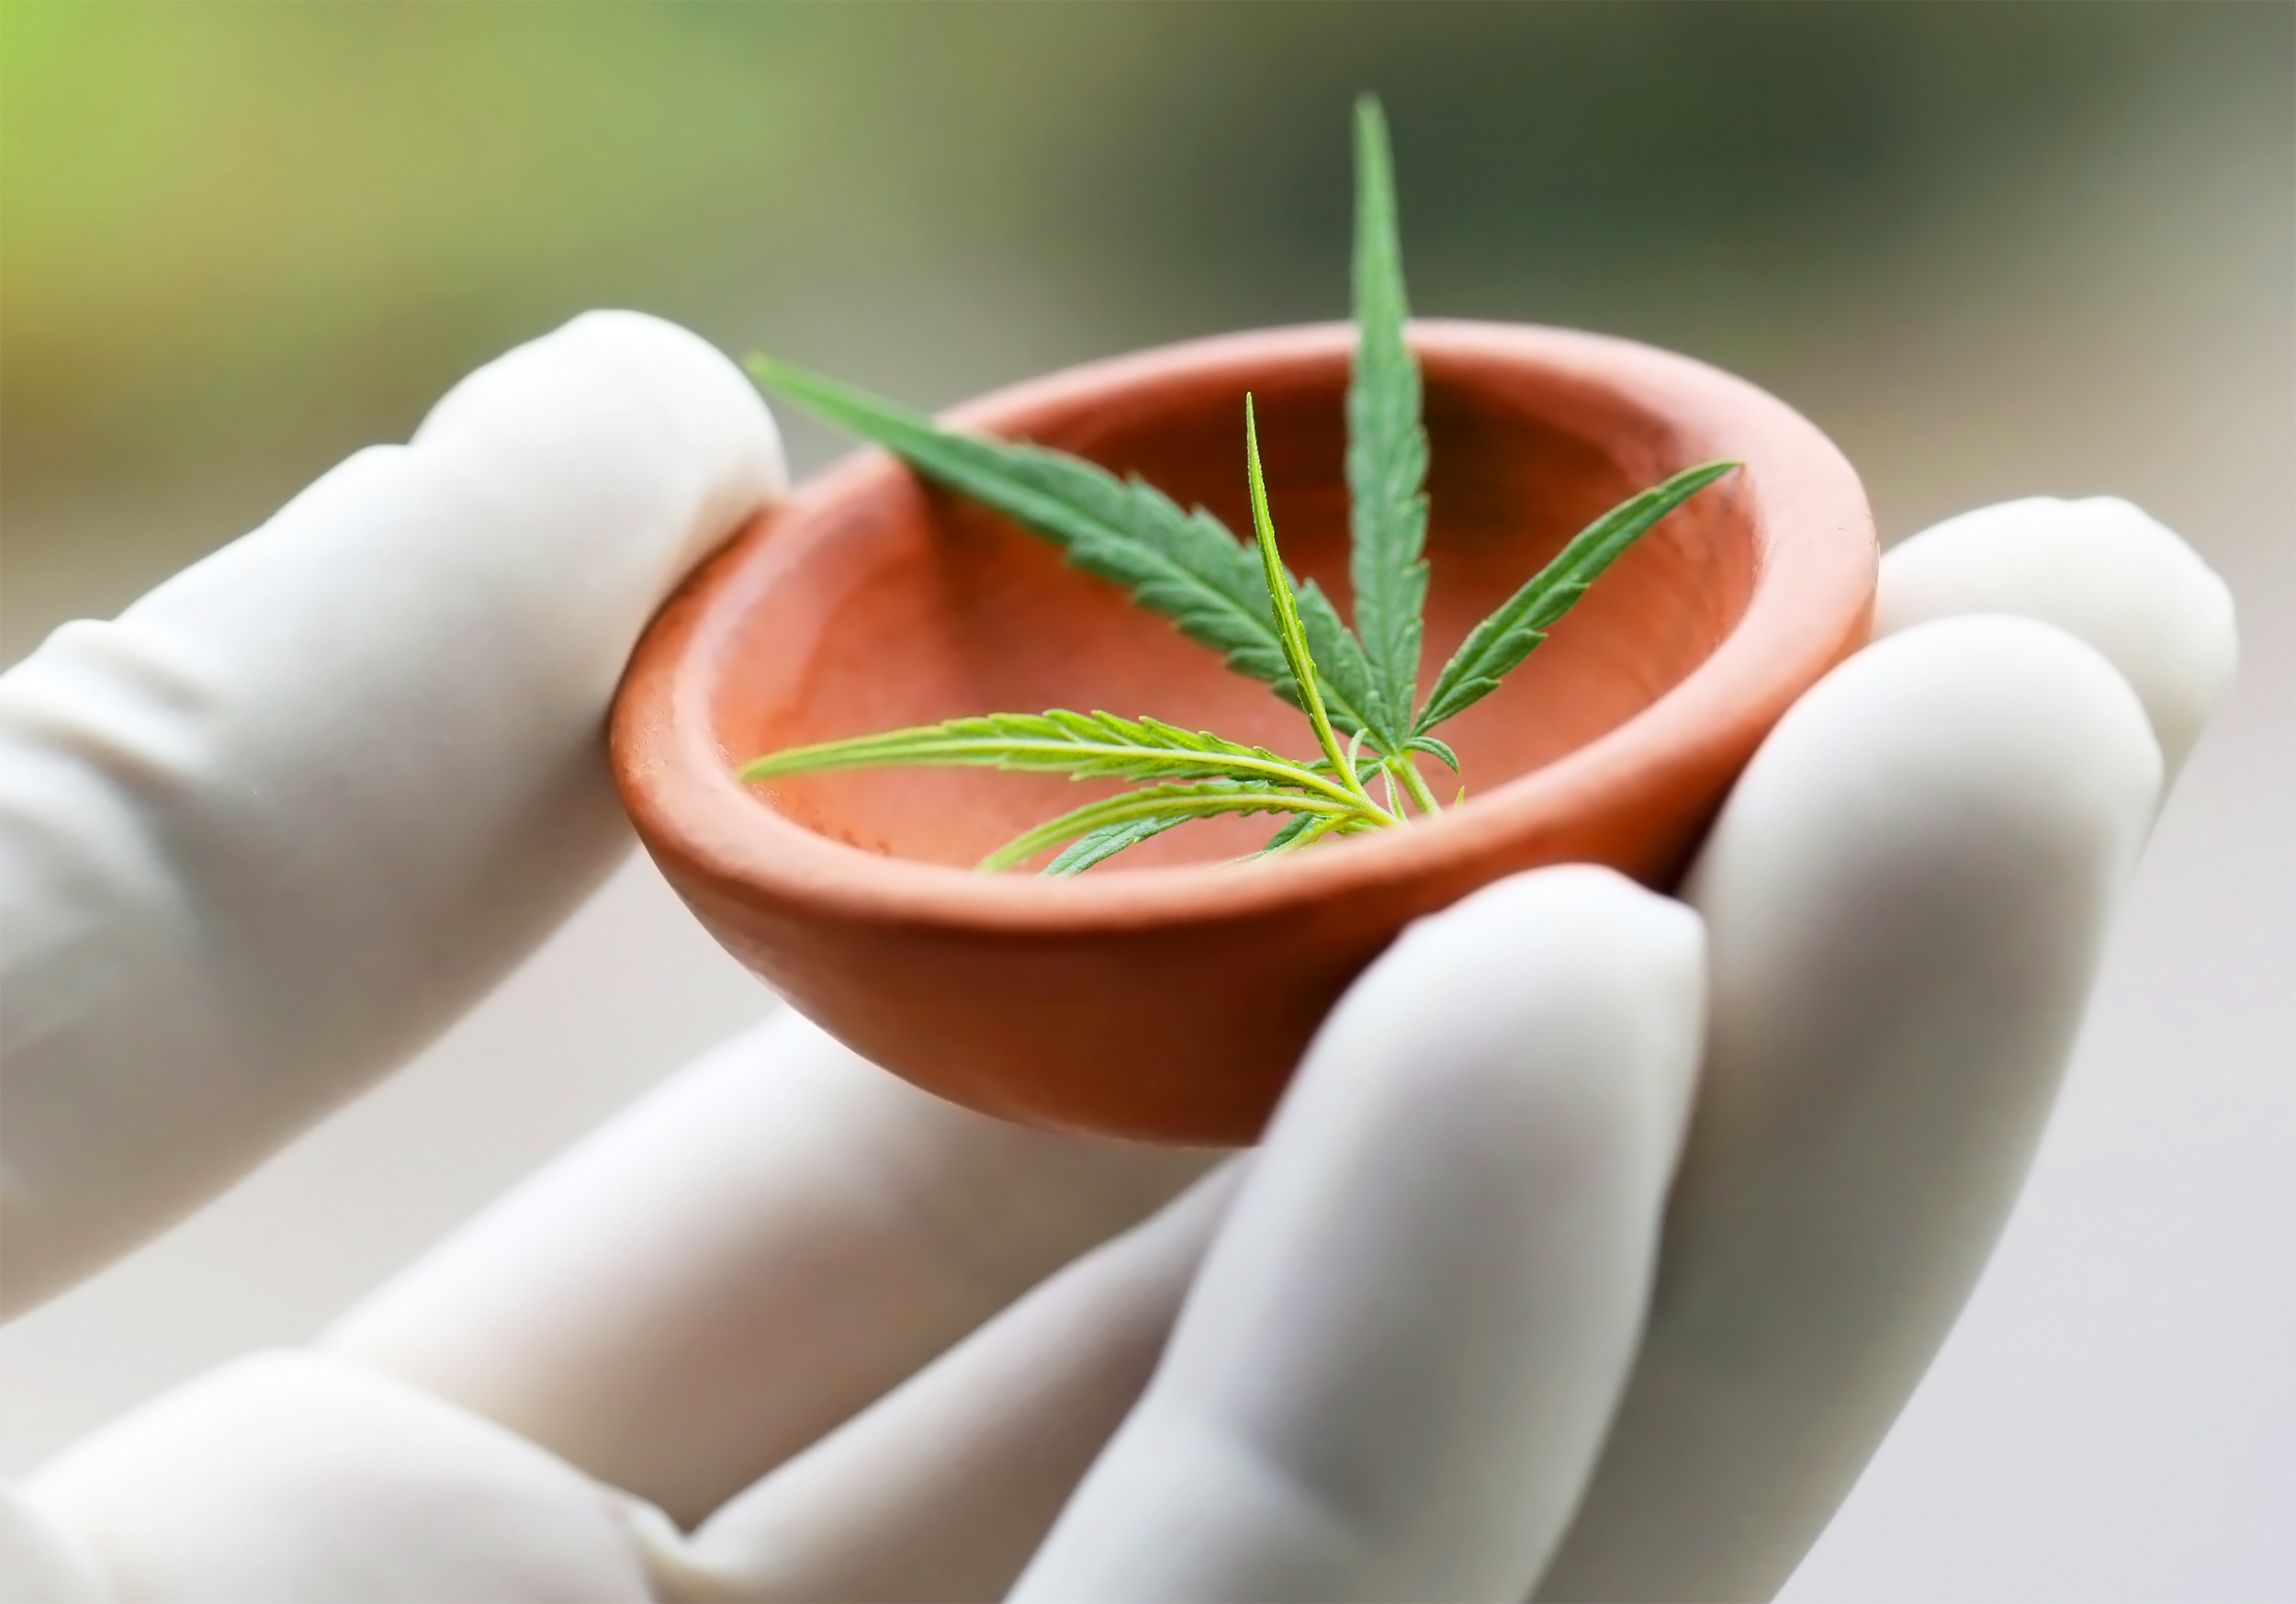 Cannabis or marijuana leaves holding by hand in a pottery wearing protecting glove; Shutterstock ID 495544738; Job: dam; PO: dam; Client: dam; Other: dam